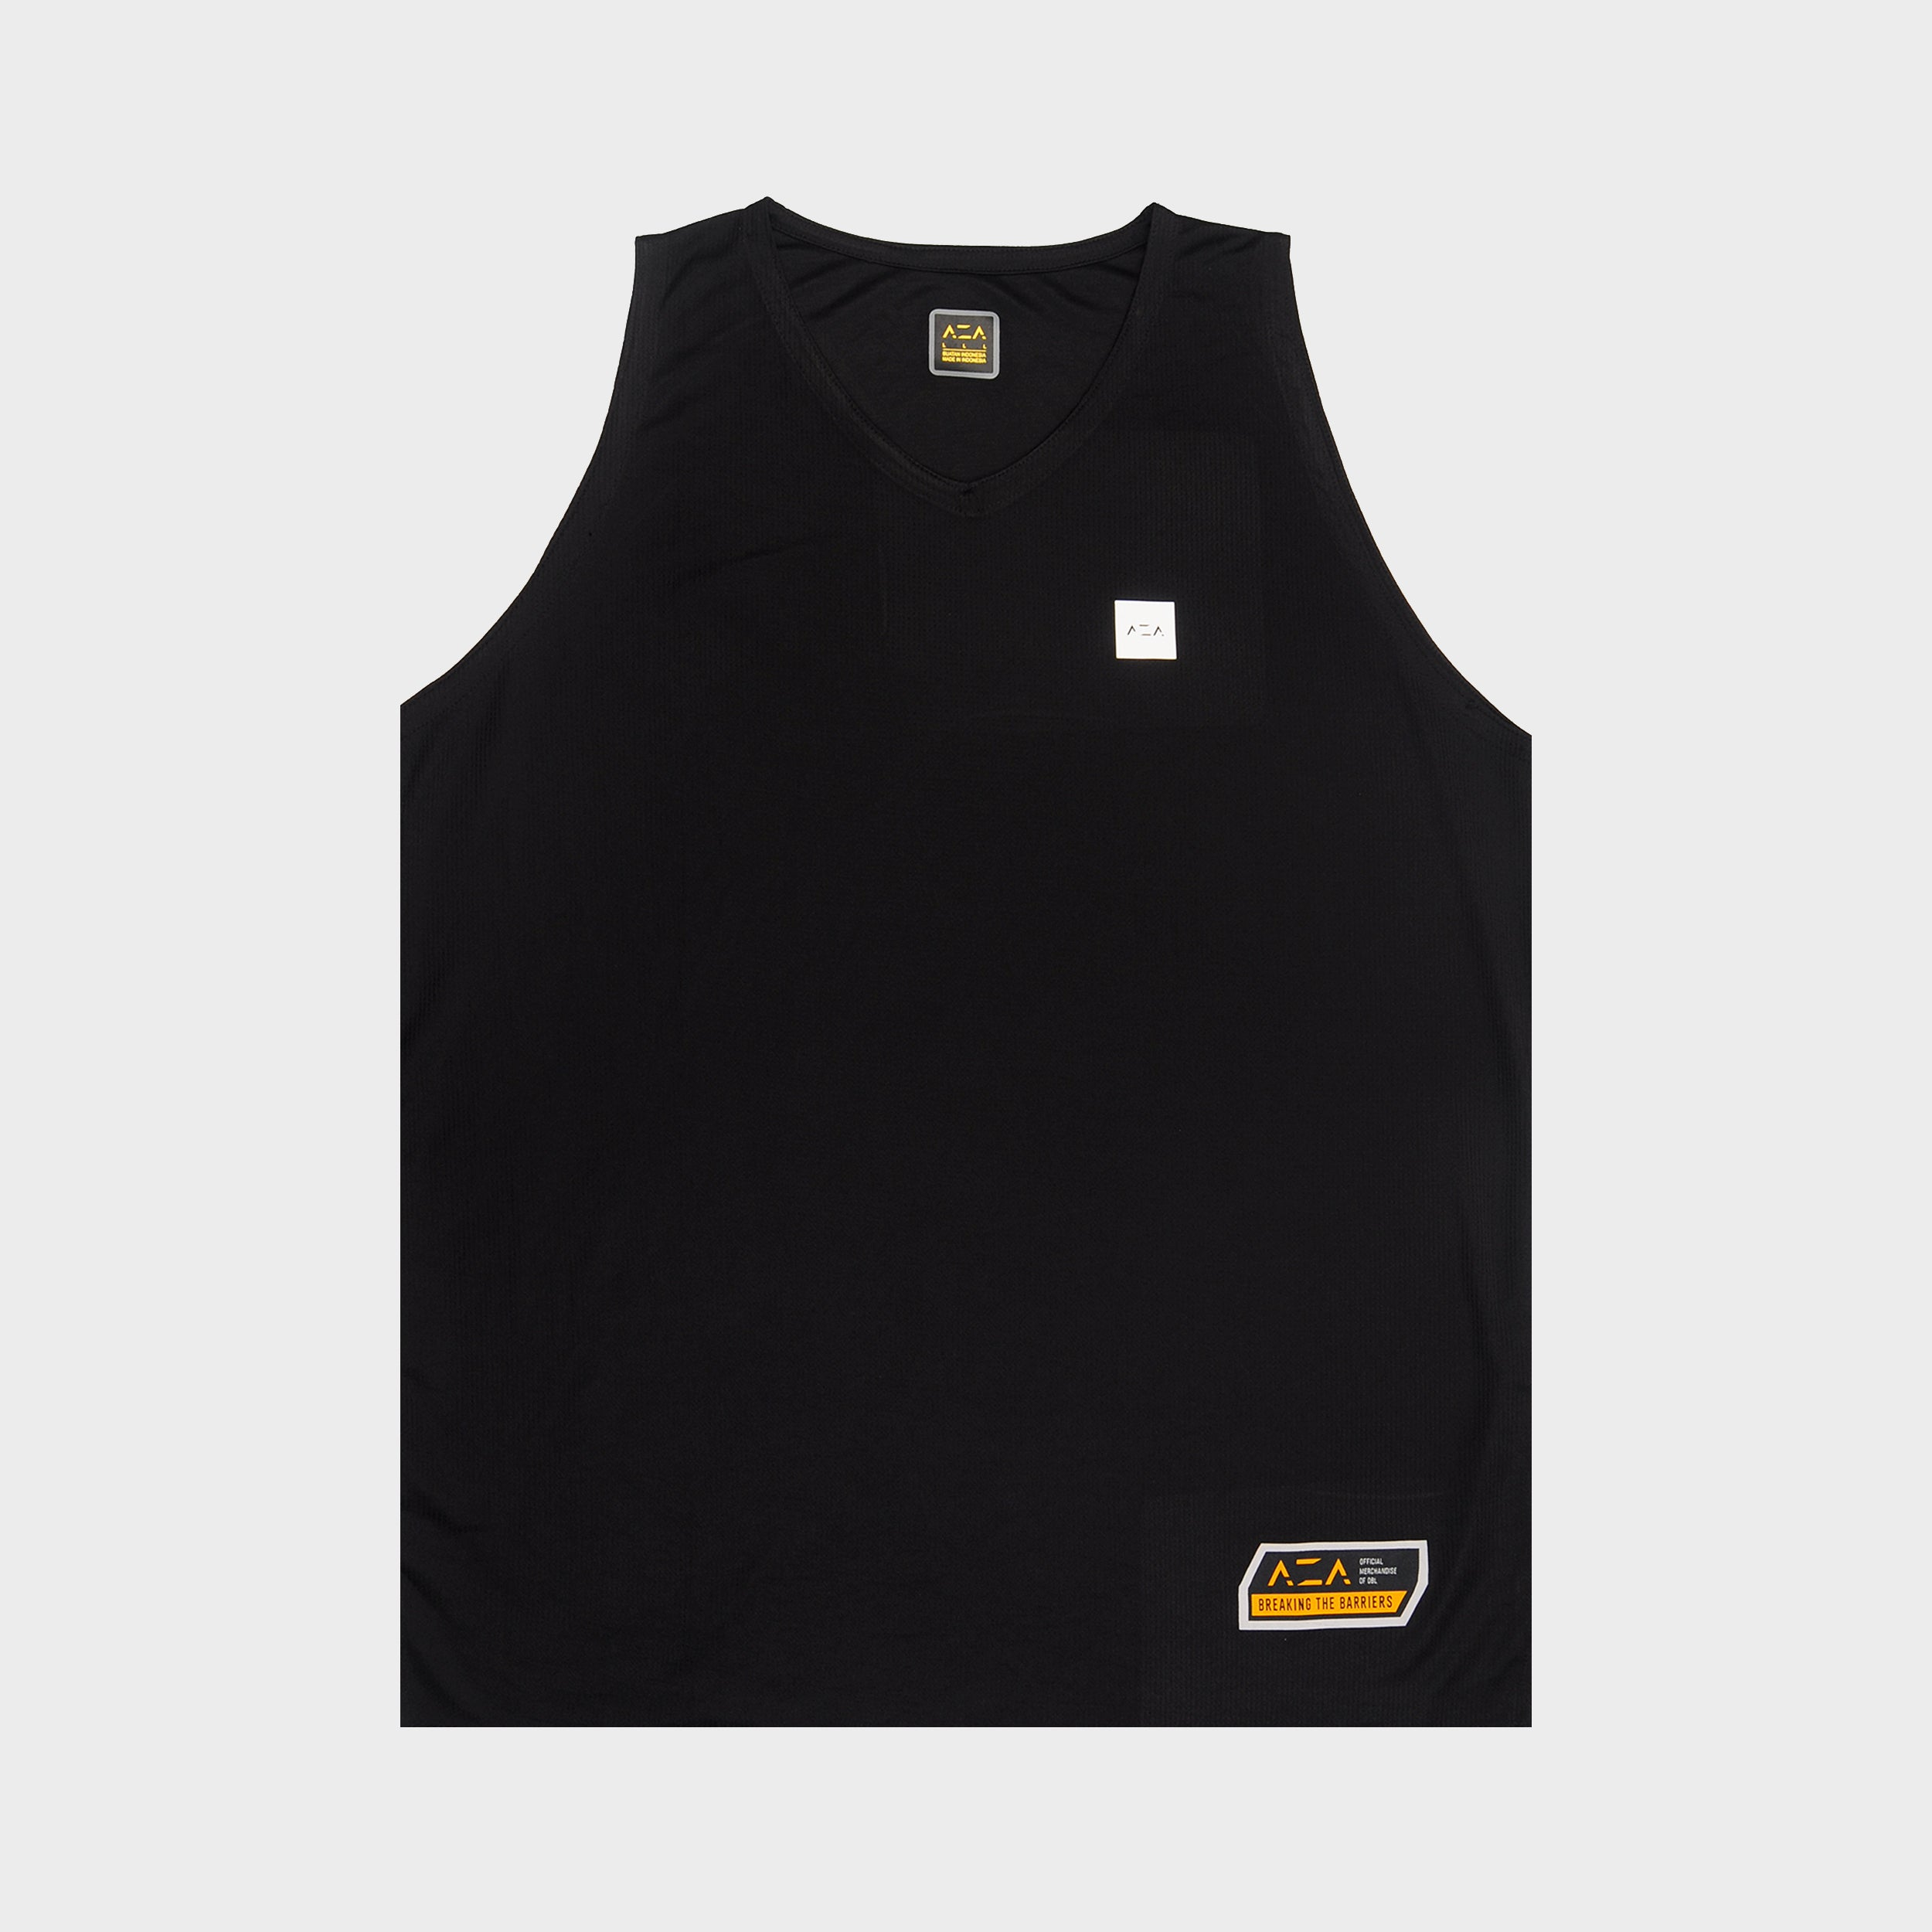 AZA Outlier Jersey - Black